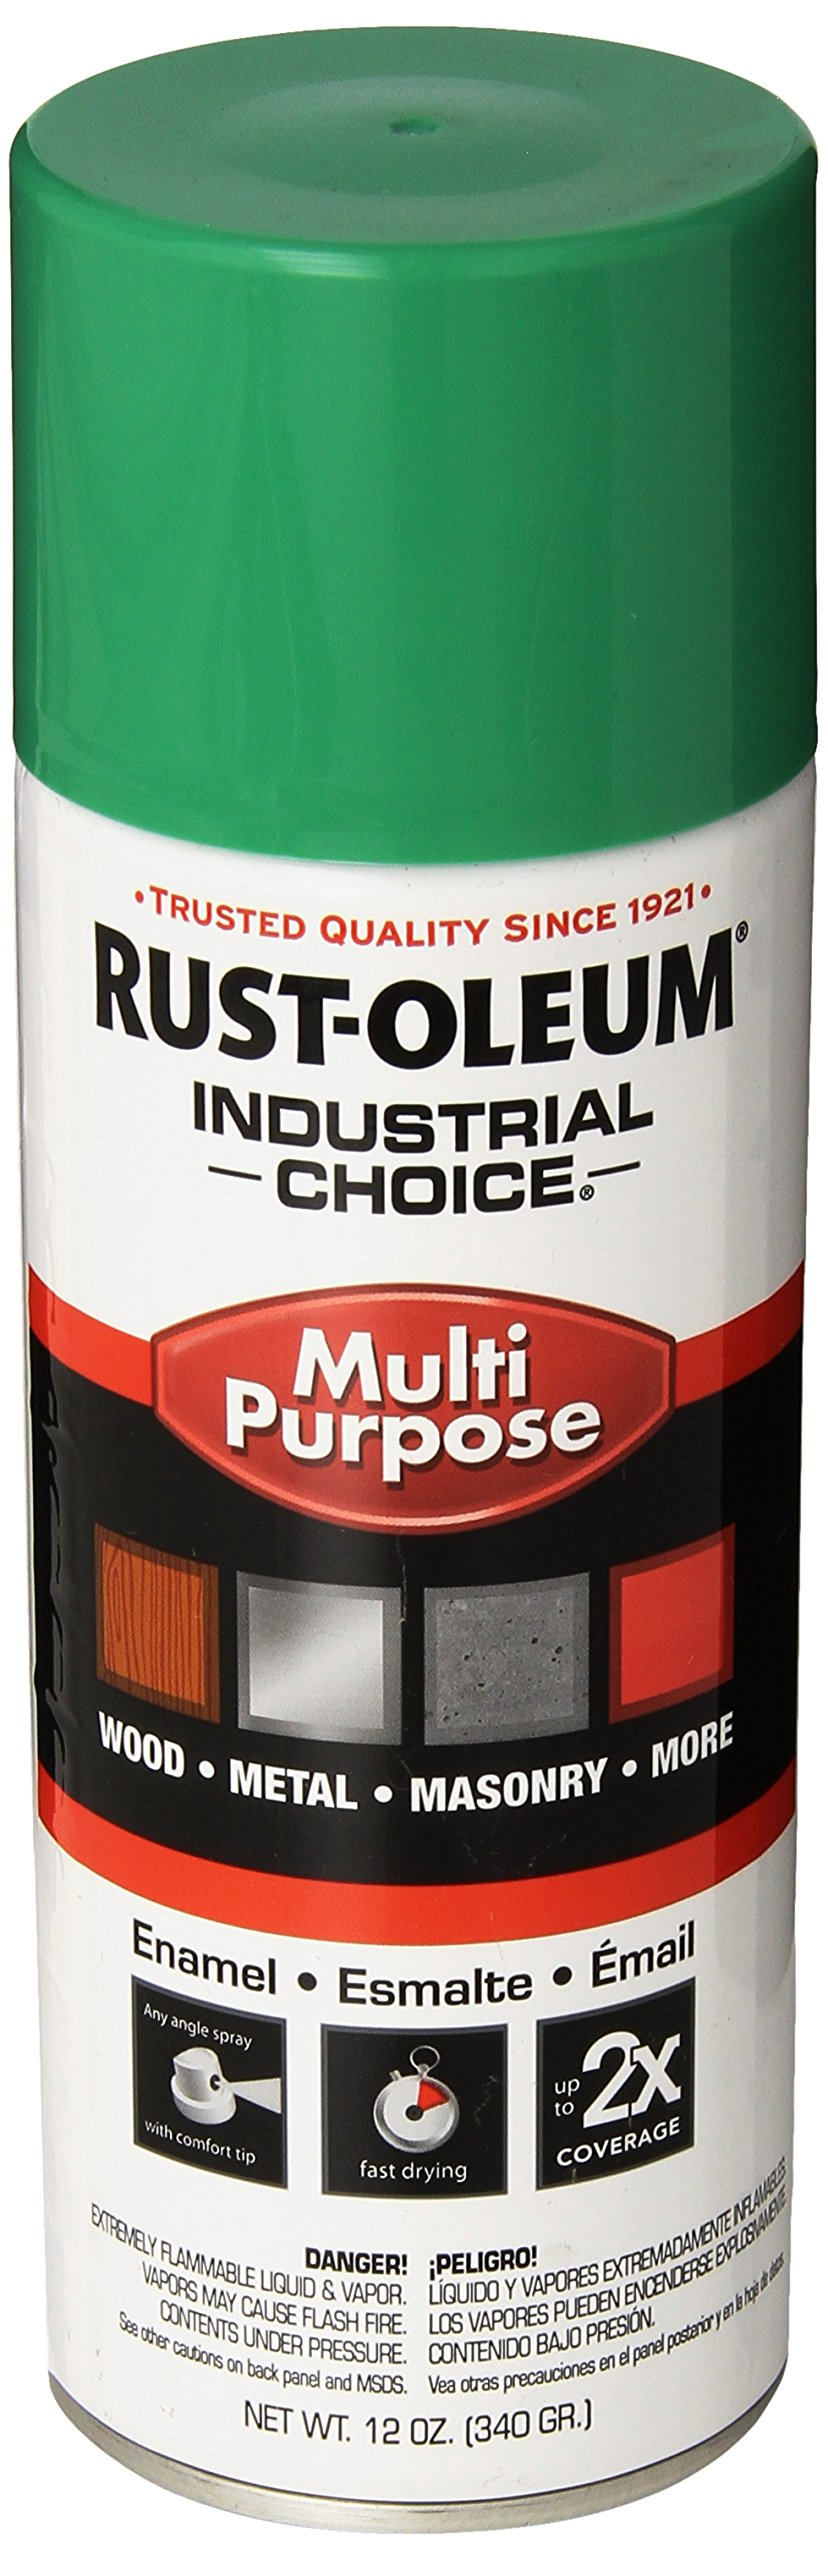 Rust-Oleum 1633830 Safety Green 1600 System General Purpose Enamel Spray Paint, 16 fl. oz. container, 12 oz. weight fill, Can (Pack of 6)